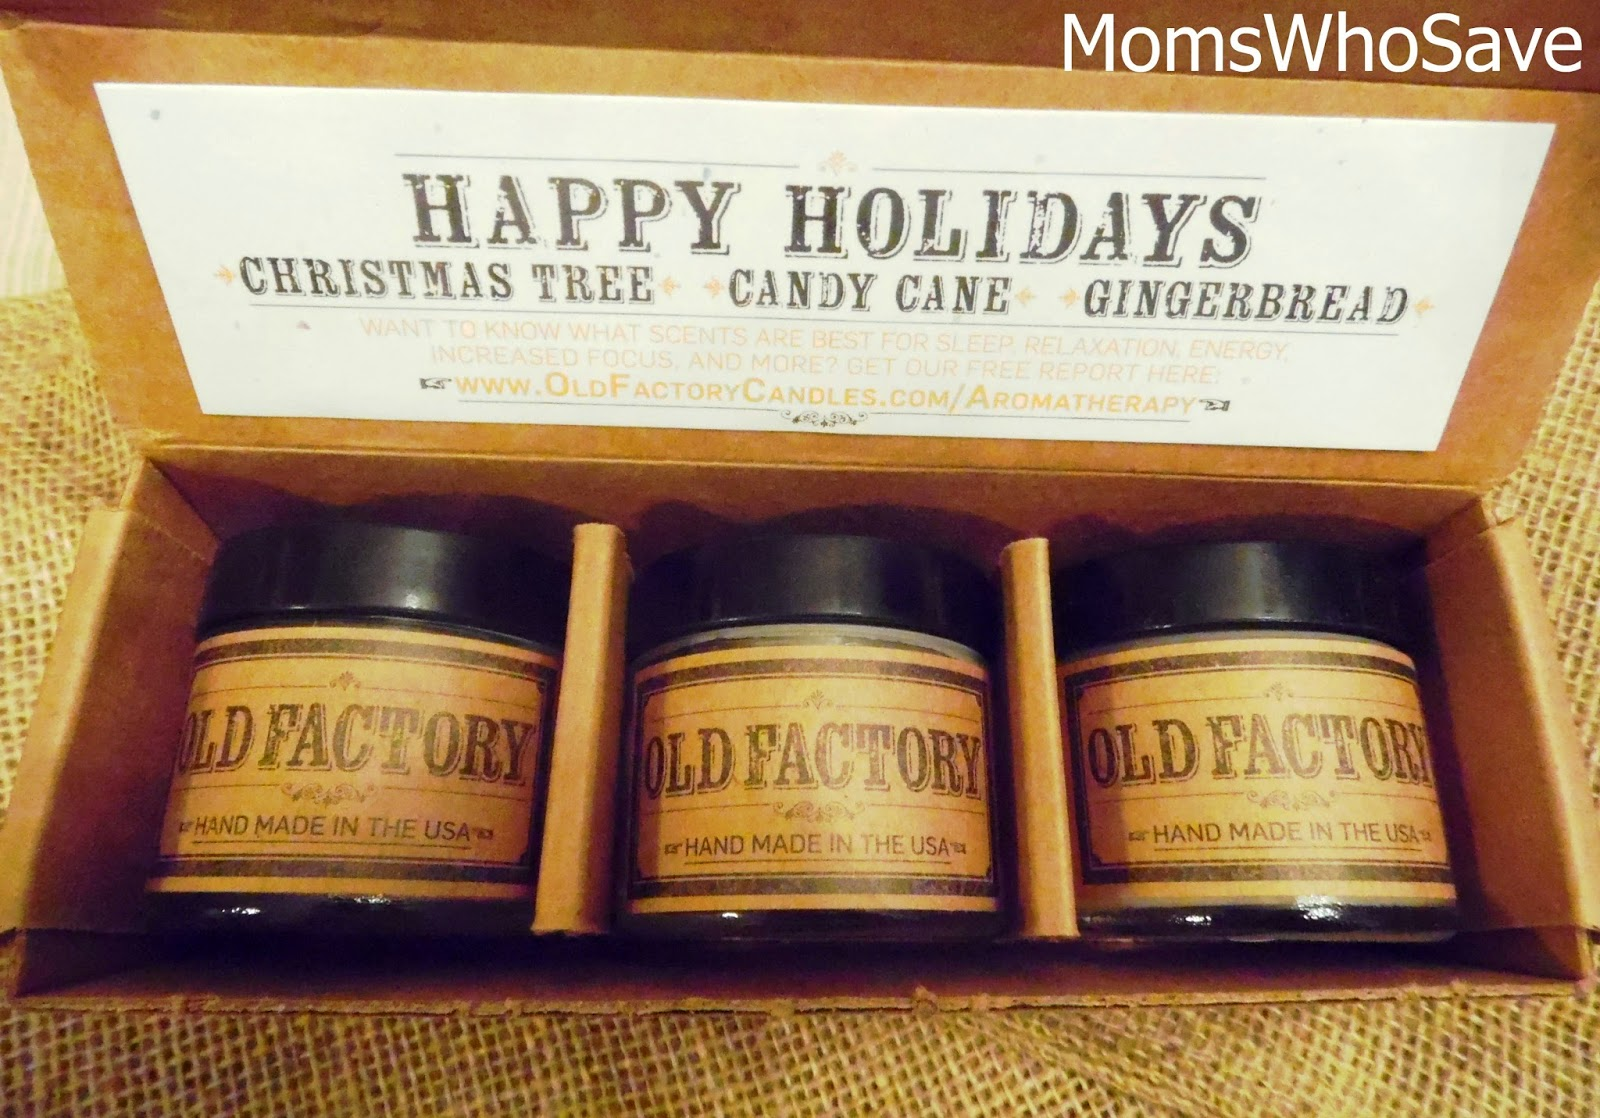 Old Factory Candles Gift Set Review and Giveaway